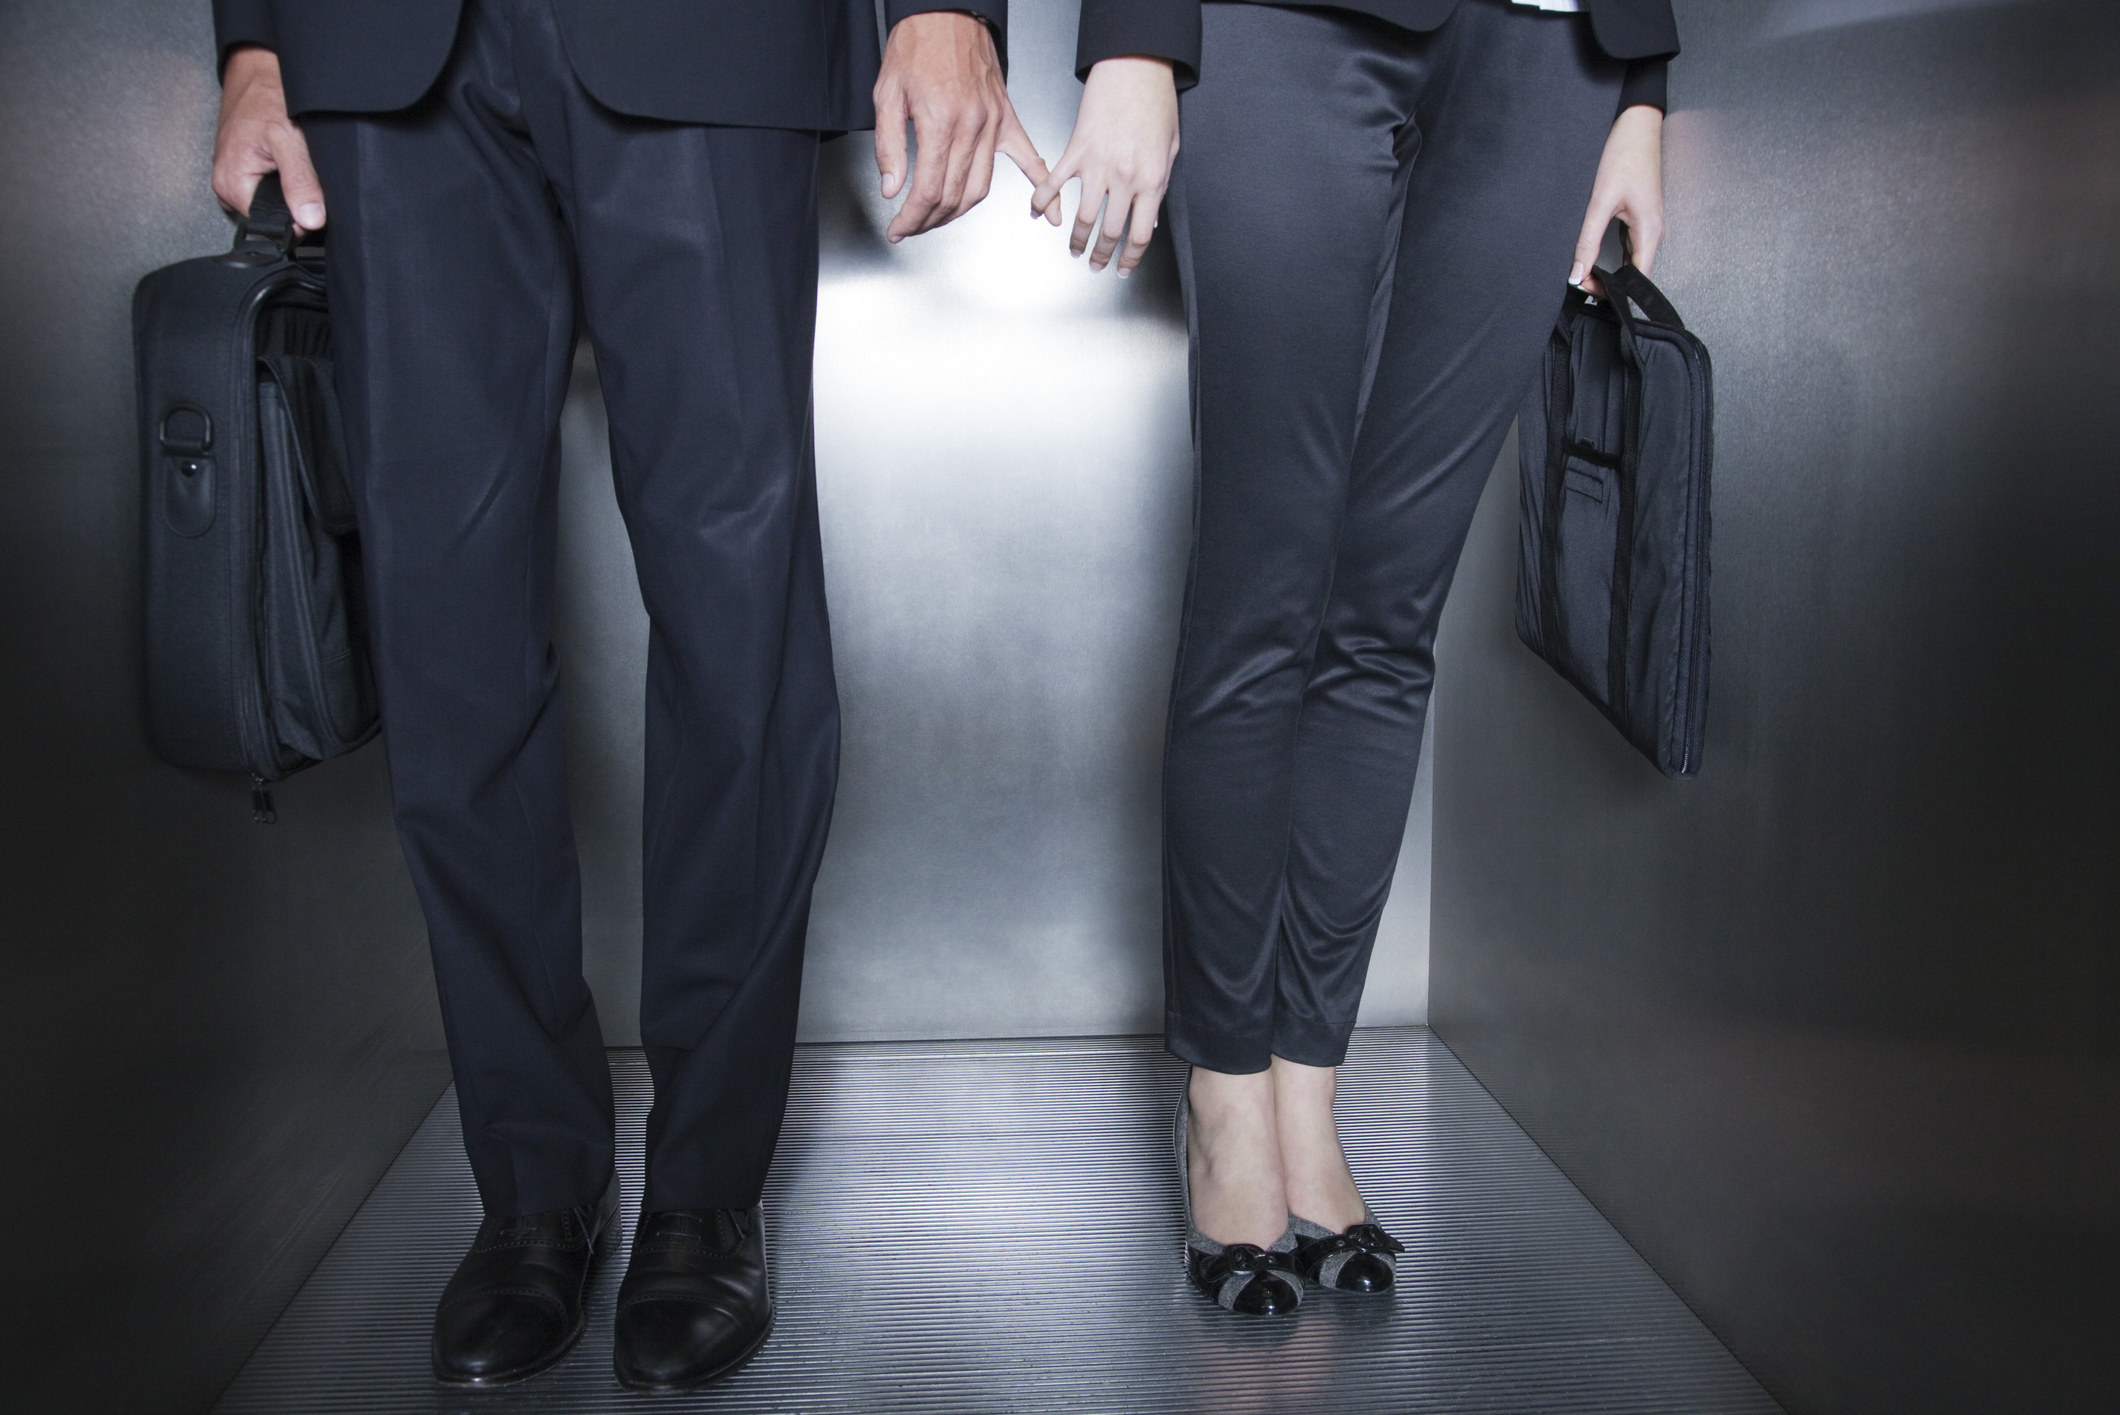 Coworkers in an elevator holding pinkies